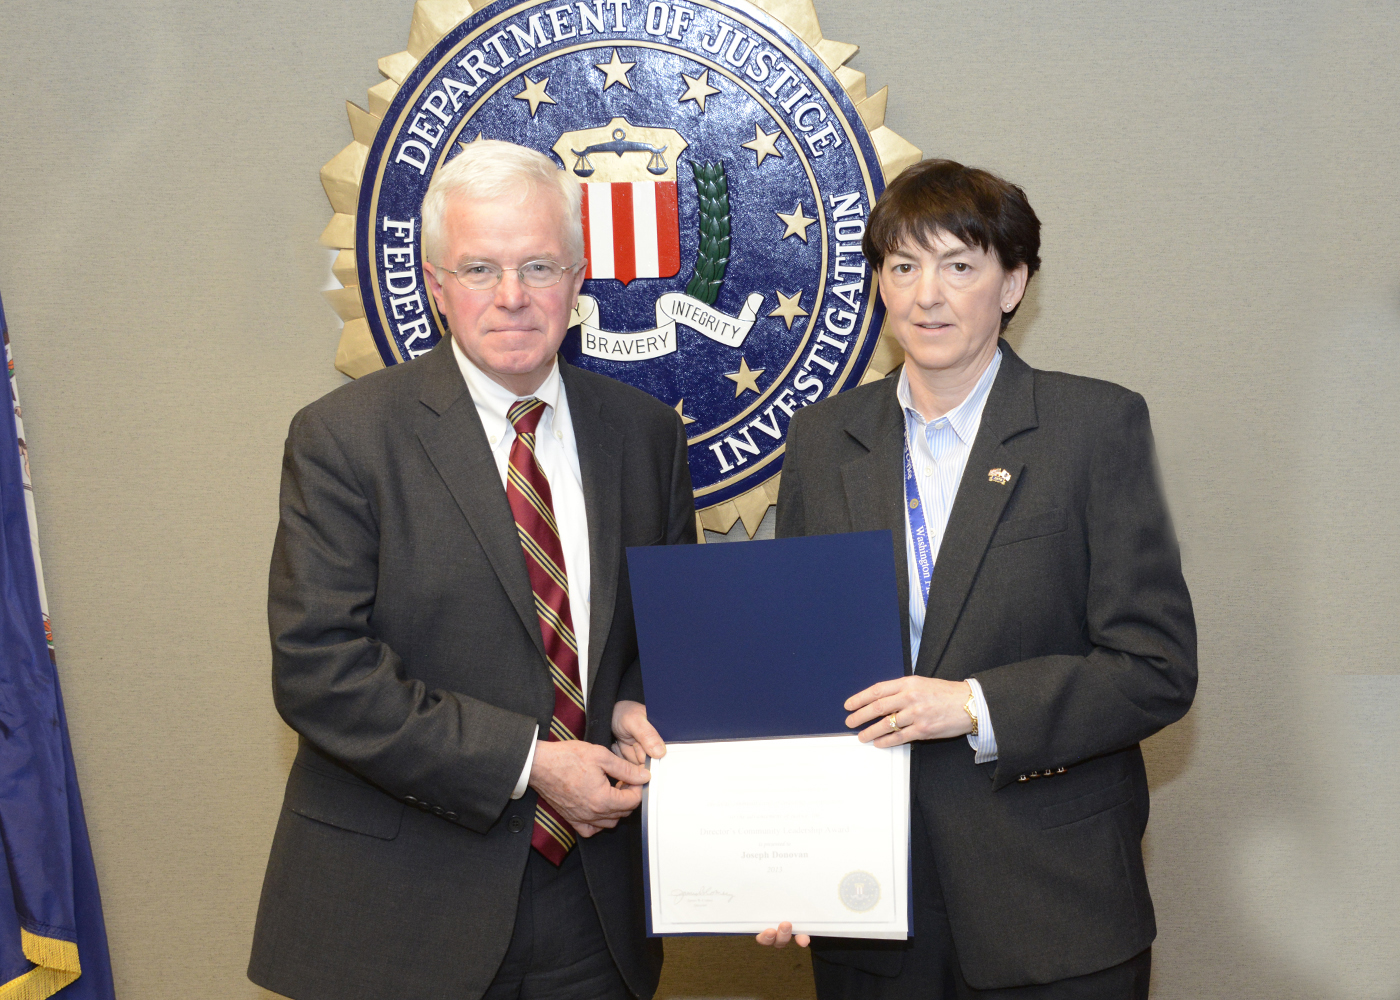 Assistant Director in Charge Valerie Parlave with Joseph Donovan (12/20/13)